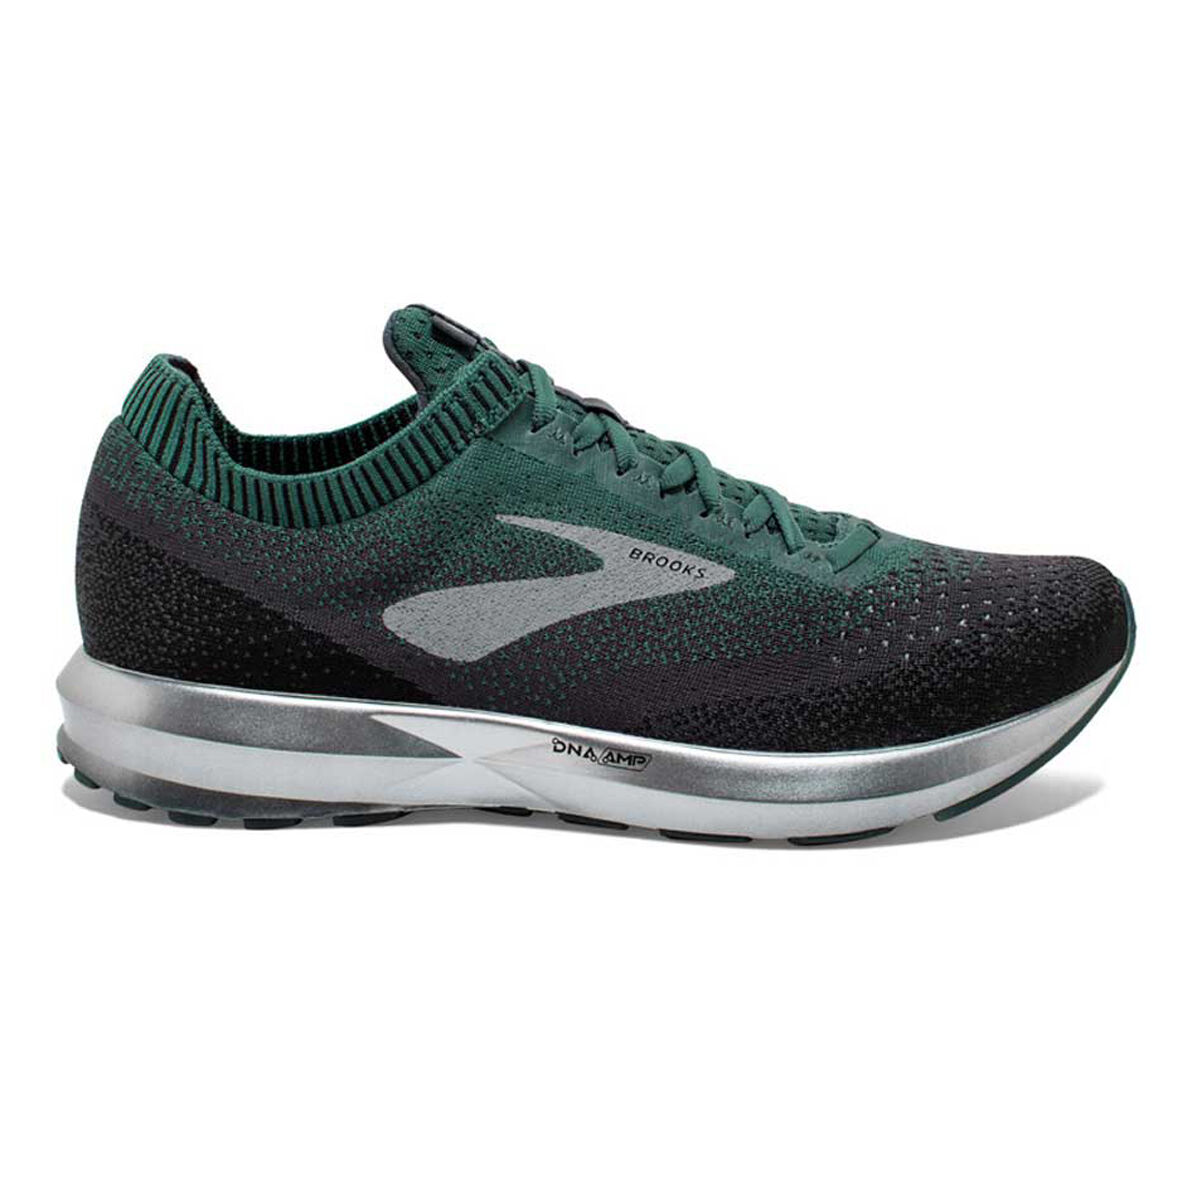 B Brooks Levitate Womens Running Shoes 004 + Free AUS Delivery!